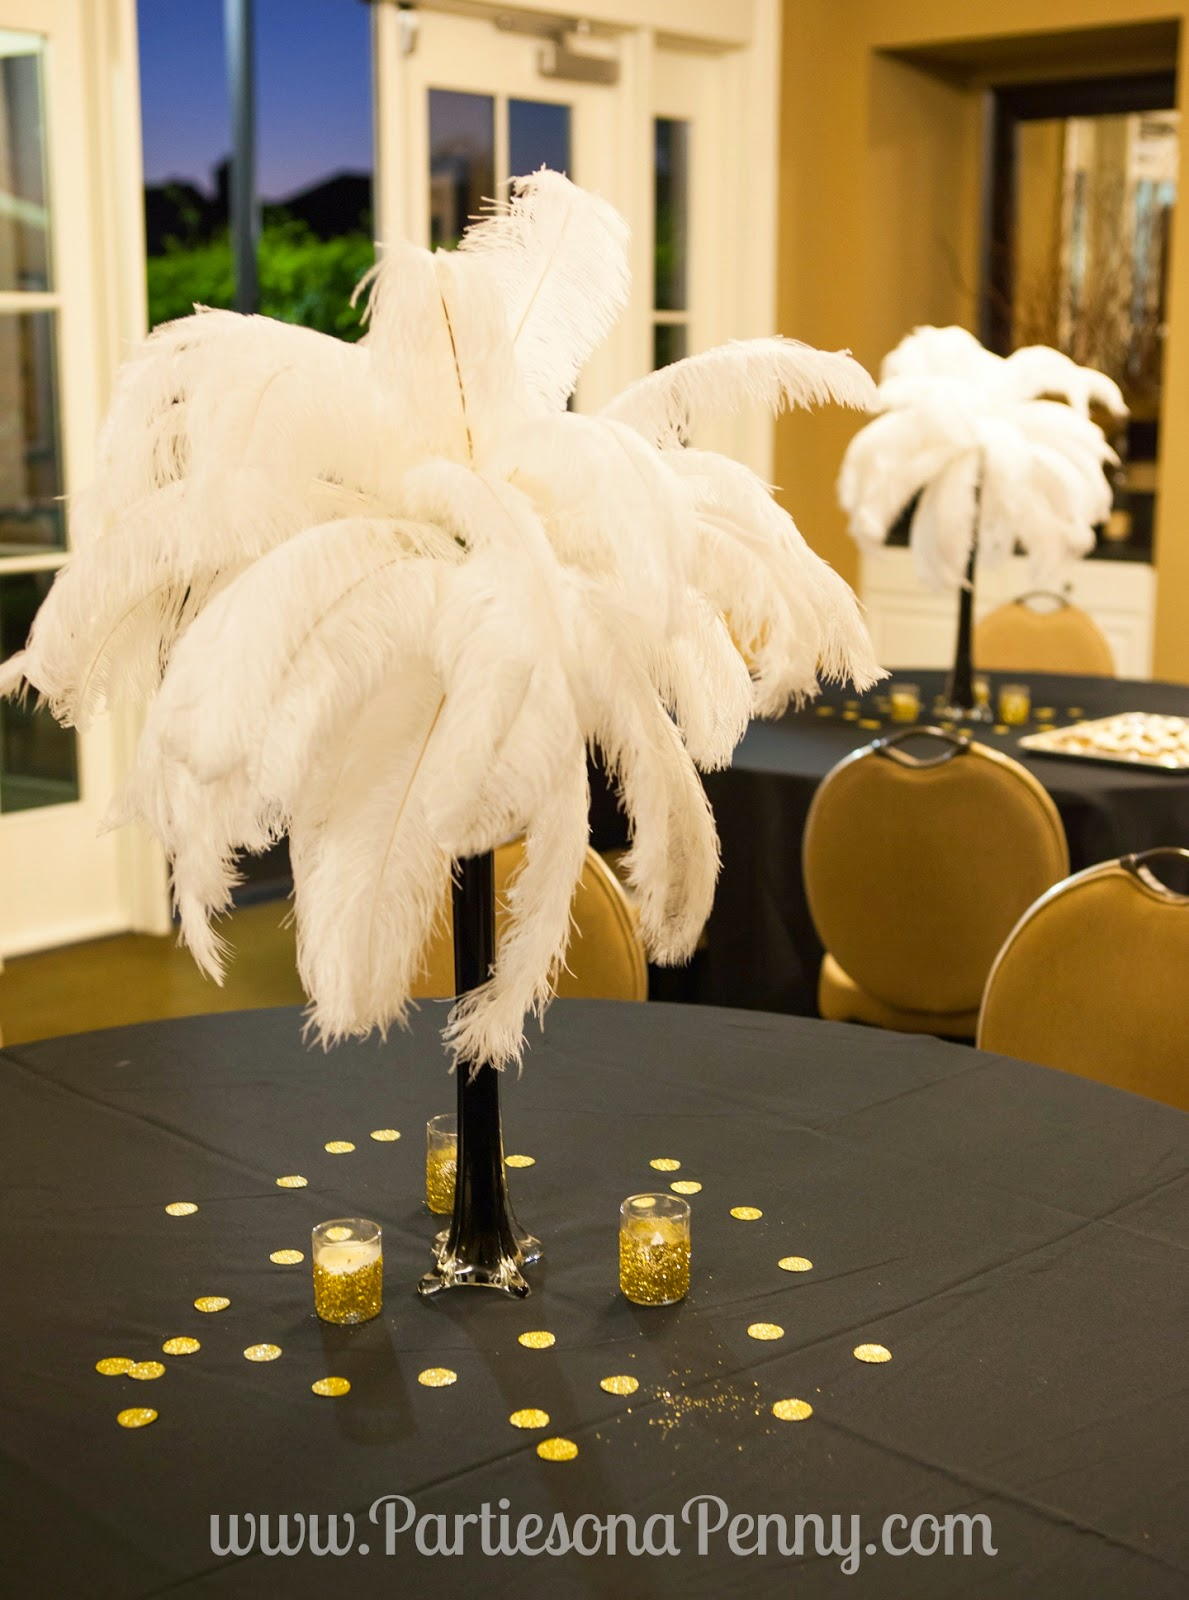 Parties on a penny my goodbye roaring 20 39 s 30th for 20s party decoration ideas